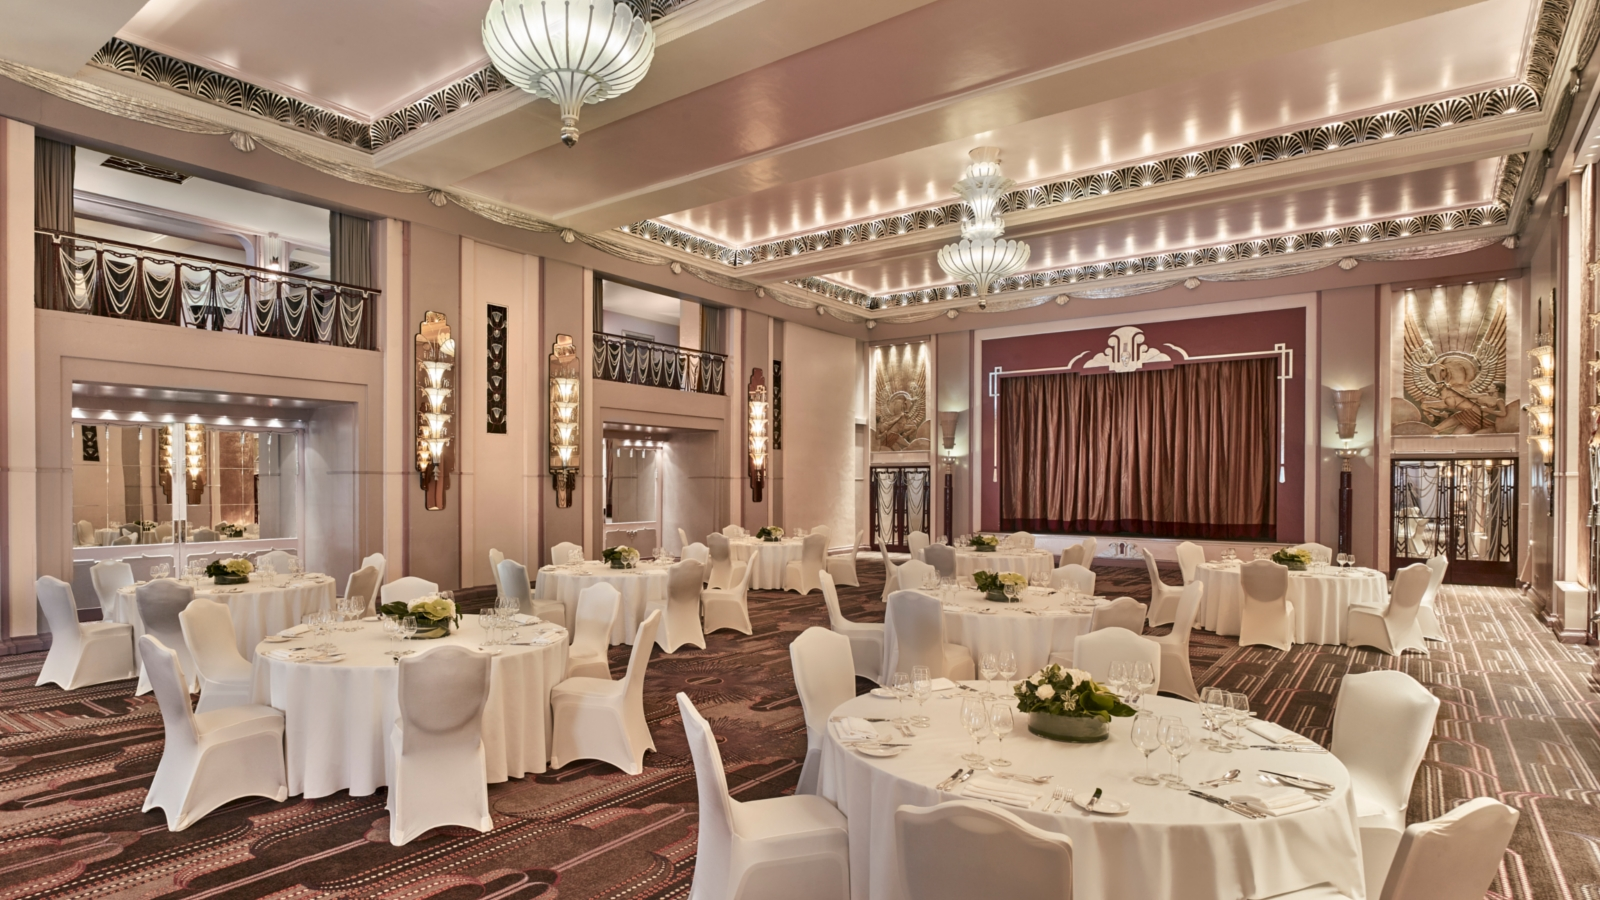 Sala da ballo, Sheraton Grand London Park Lane Hotel, Londra. Foto di: Sheraton Grand London Park Lane Hotel